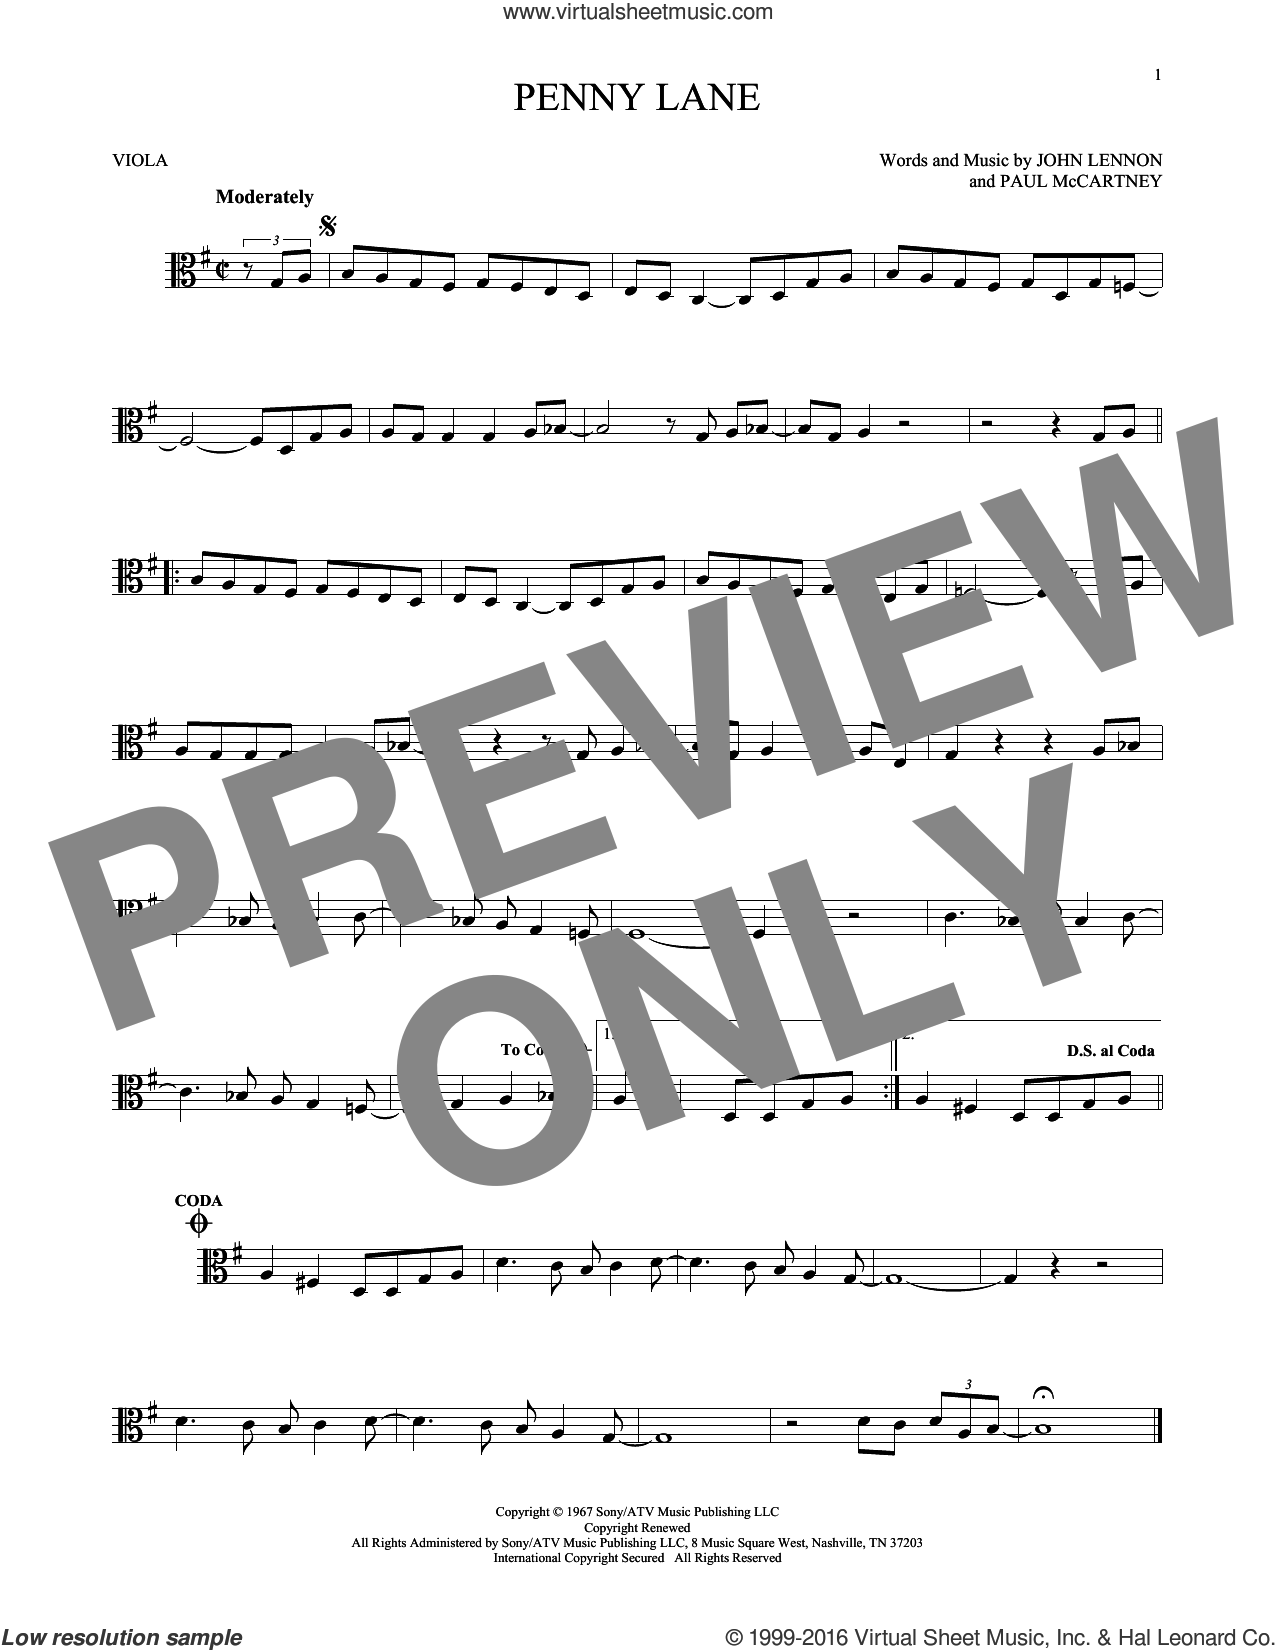 Penny Lane sheet music for viola solo by The Beatles, John Lennon and Paul McCartney, intermediate skill level